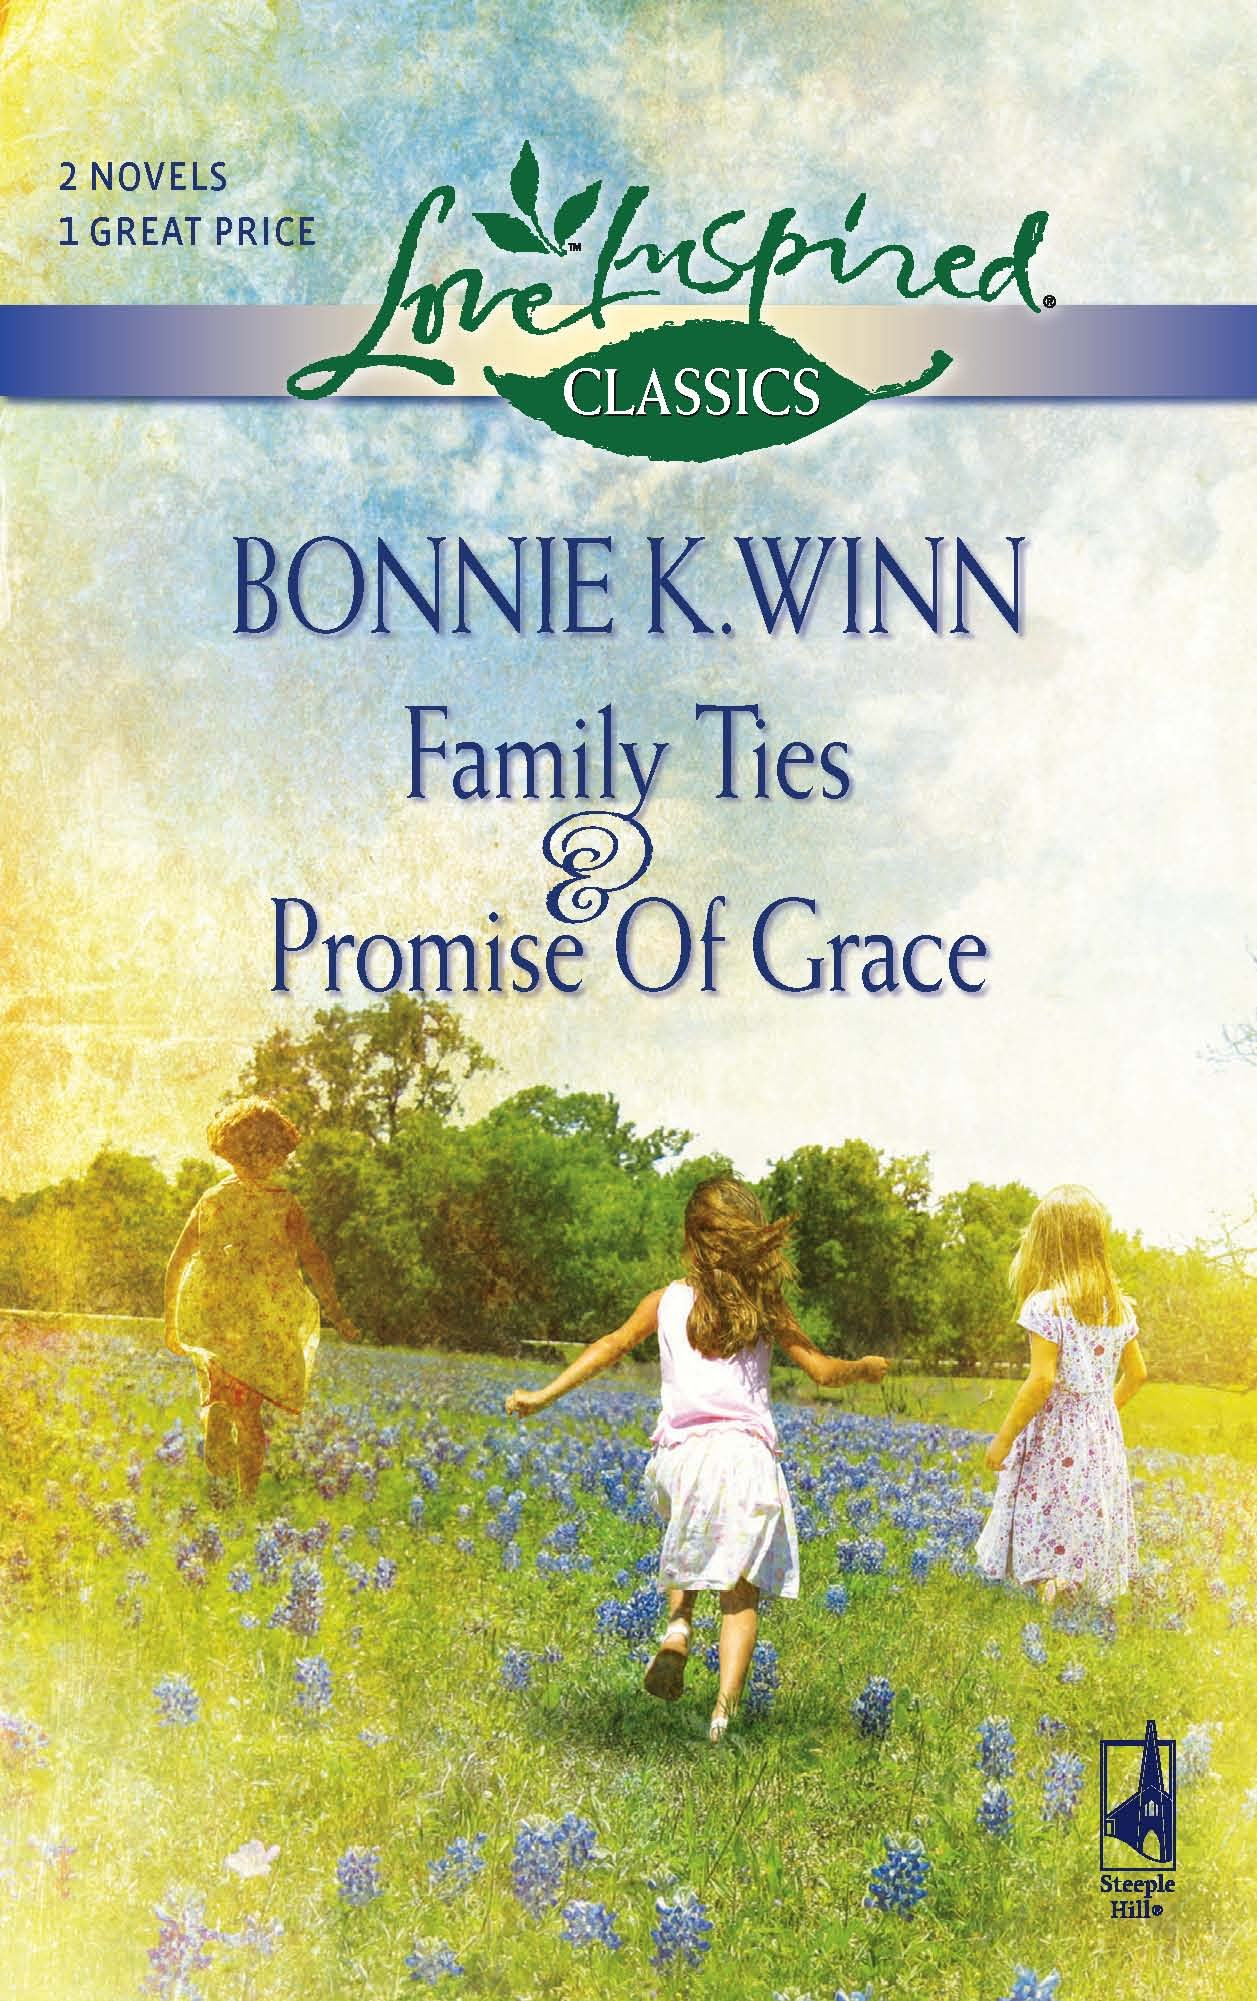 Download Family Ties/Promise of Grace (Love Inspired Classics) ebook